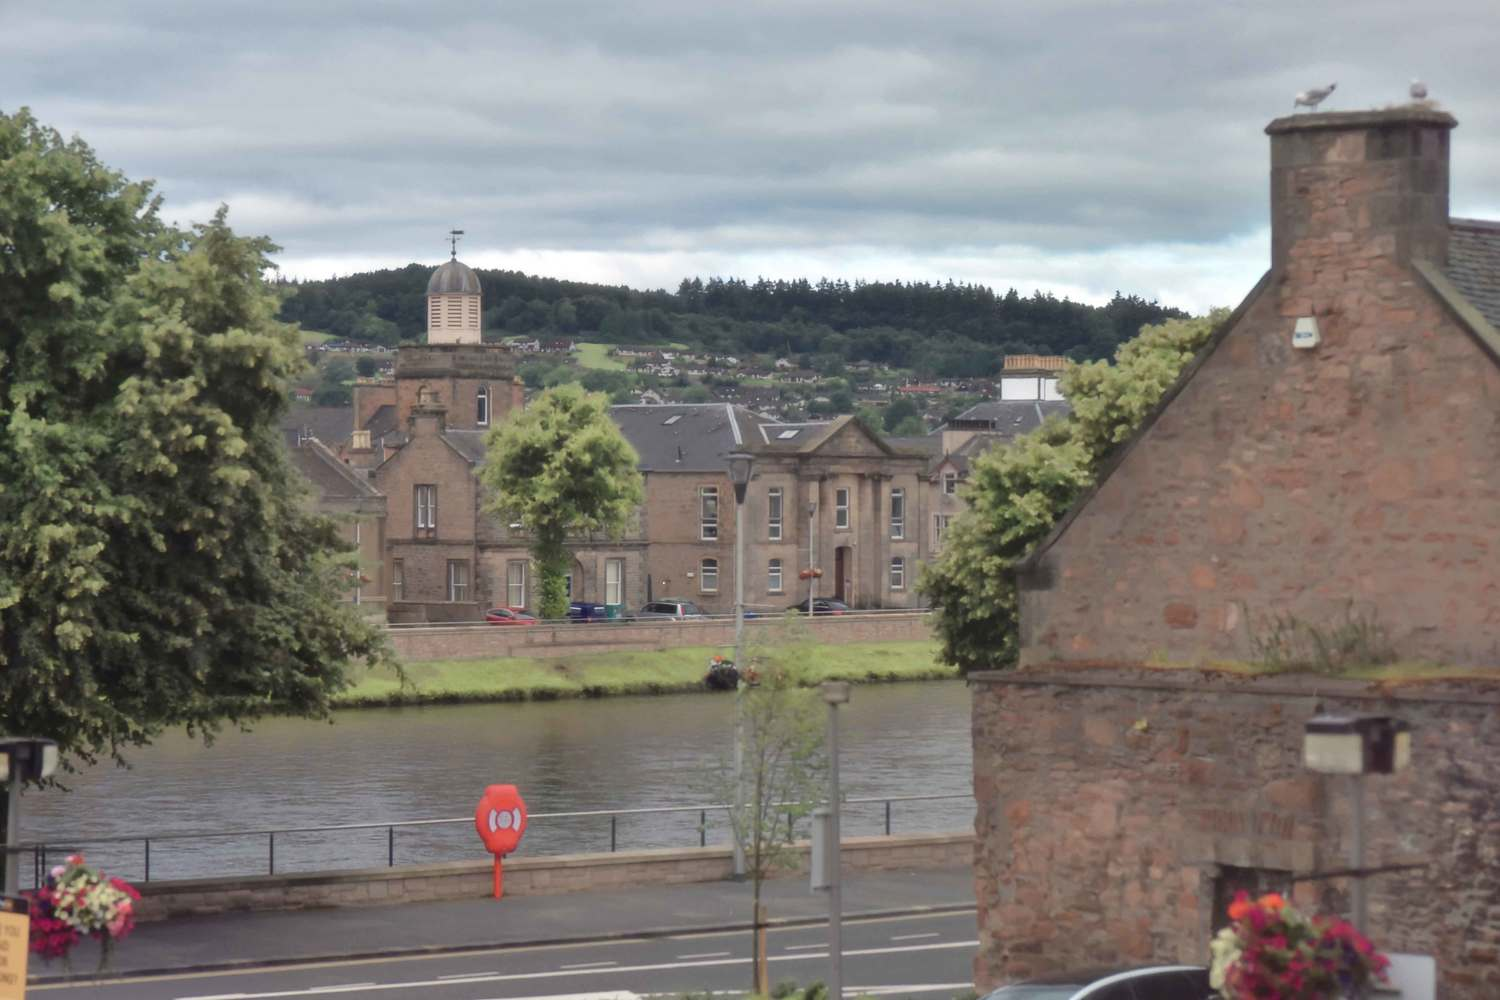 View from restaurant, Mercure hotel, Inverness, Scotland. Image©thingstodot.com